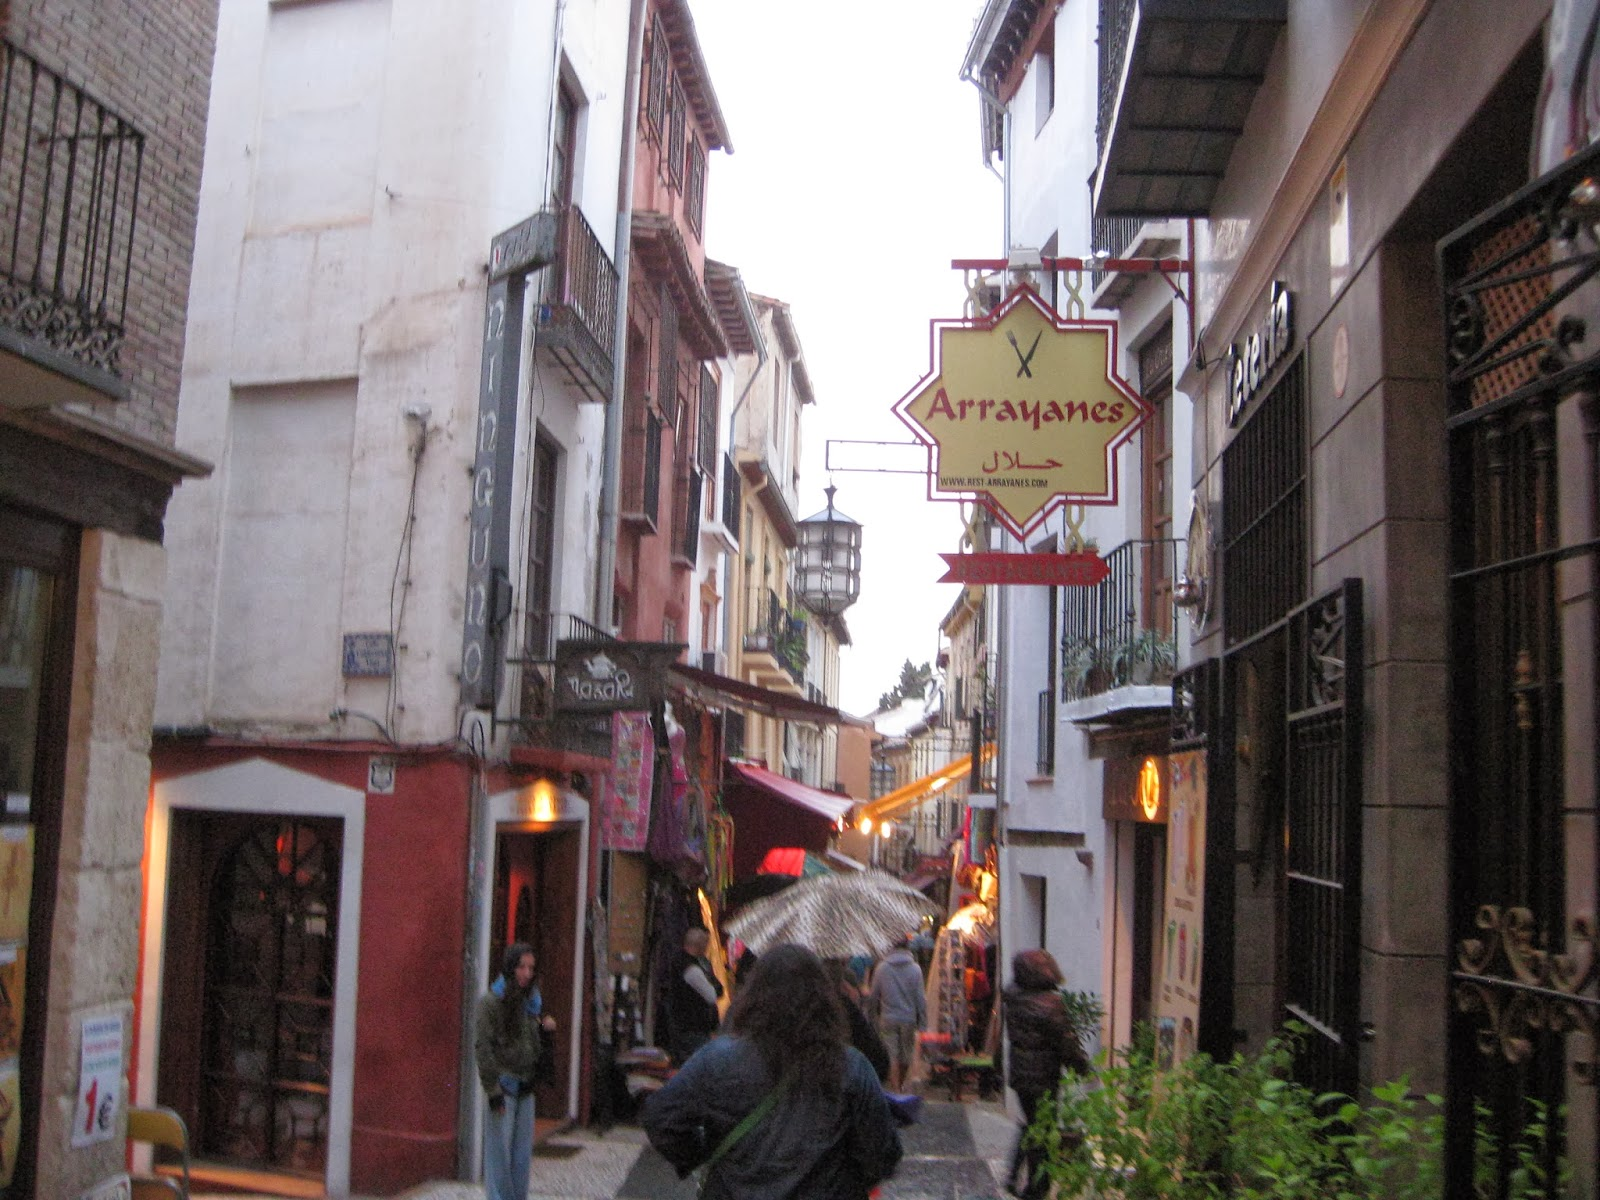 Granada - The Albayzin - very narrow streets lined with shops, restaurants, and tea shops